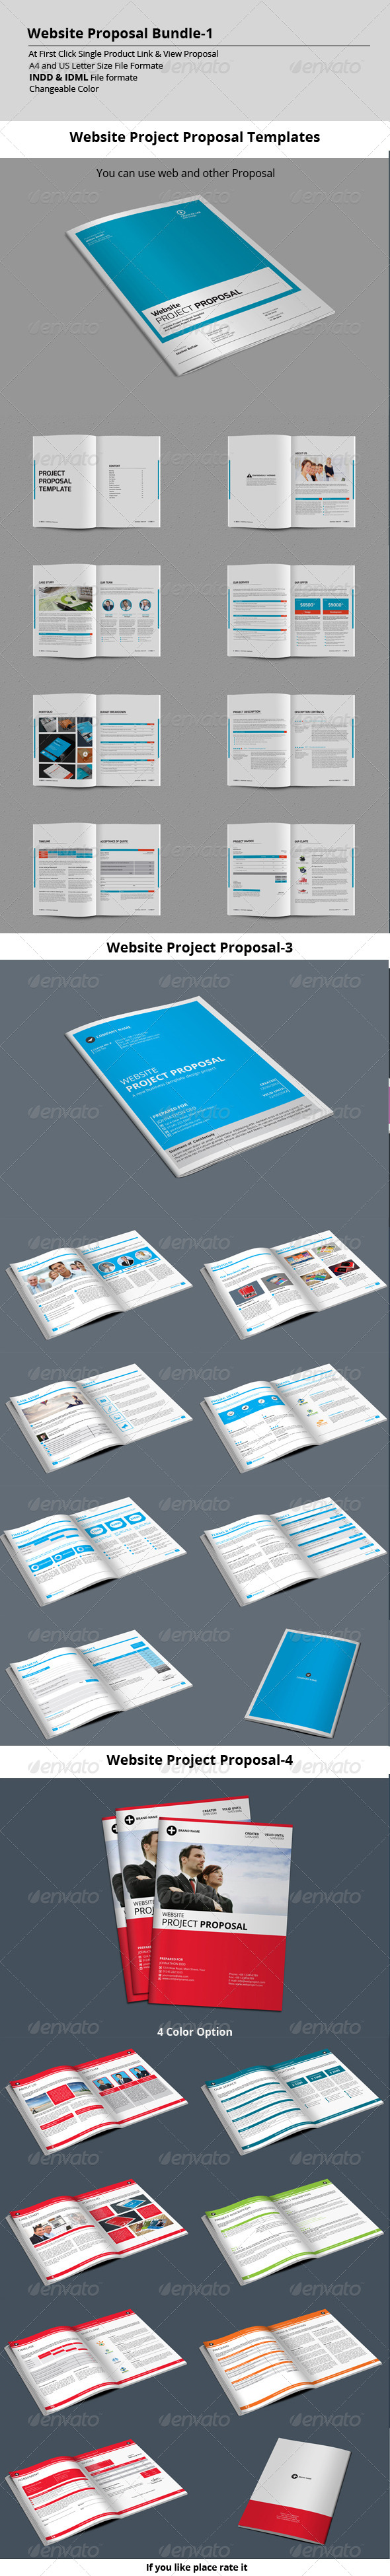 GraphicRiver Website Proposal Bundle-1 8565631